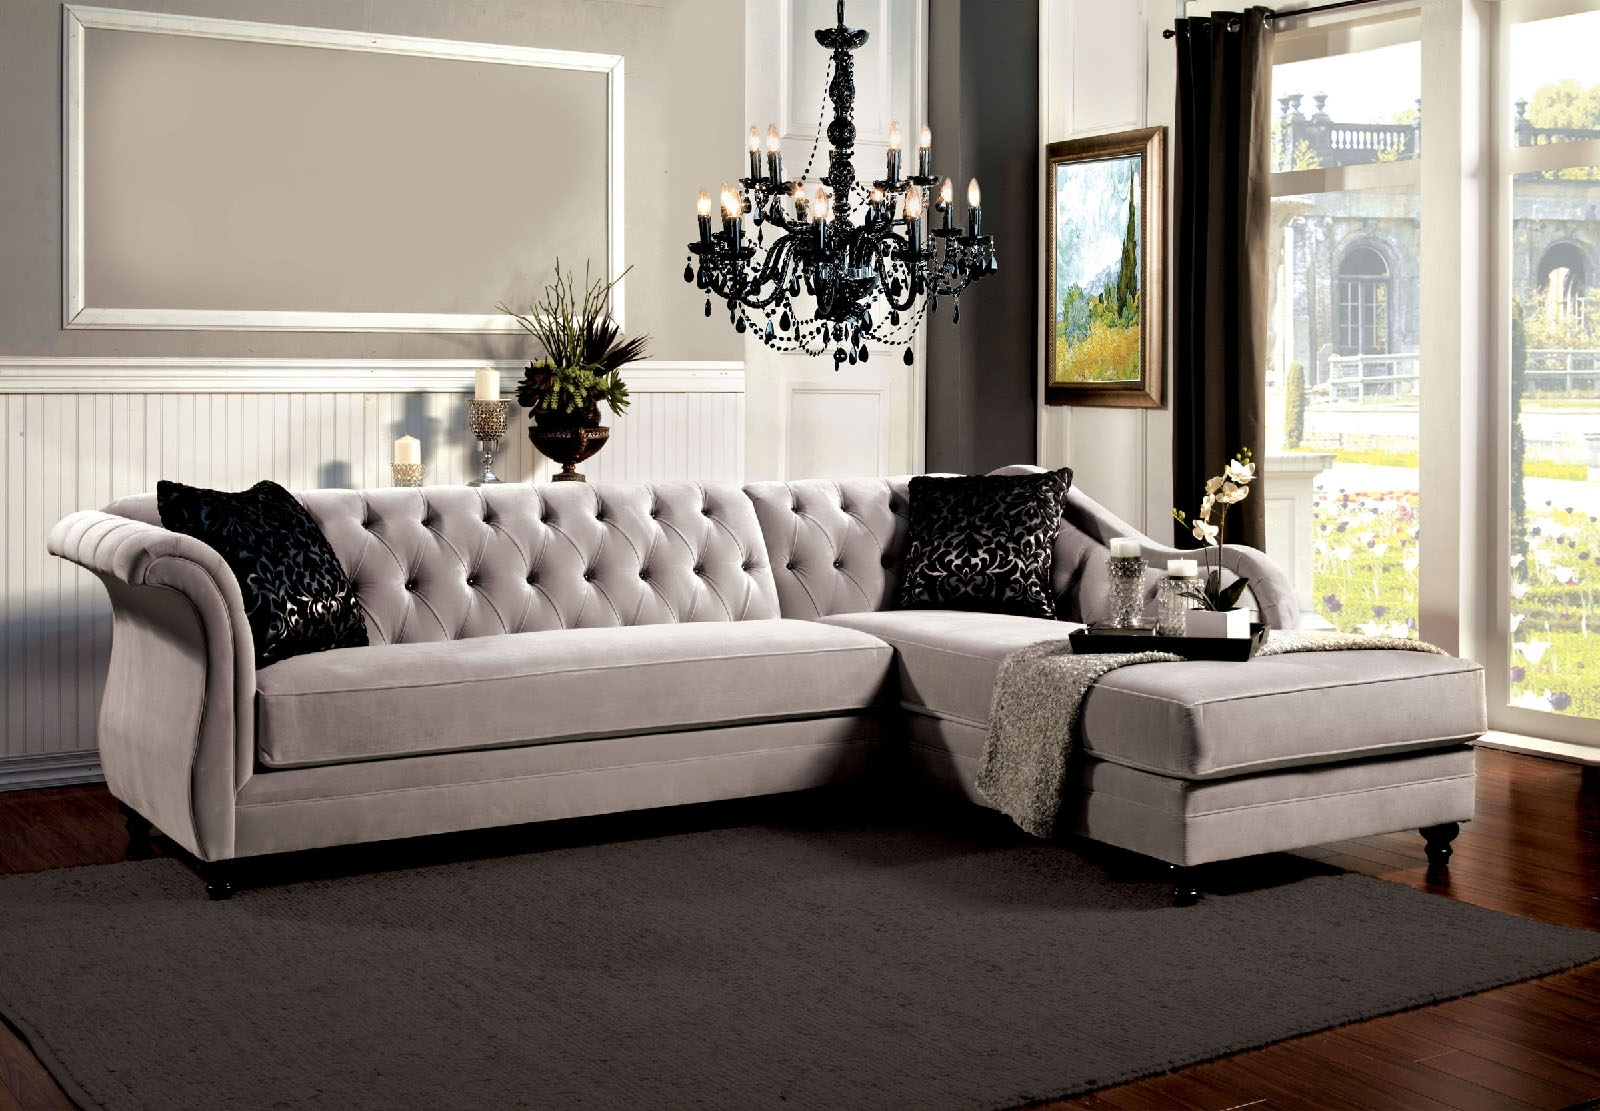 Grey Vintage Tufted Sectional Sofa Intended For Tufted Sectional Sofas (Image 4 of 10)